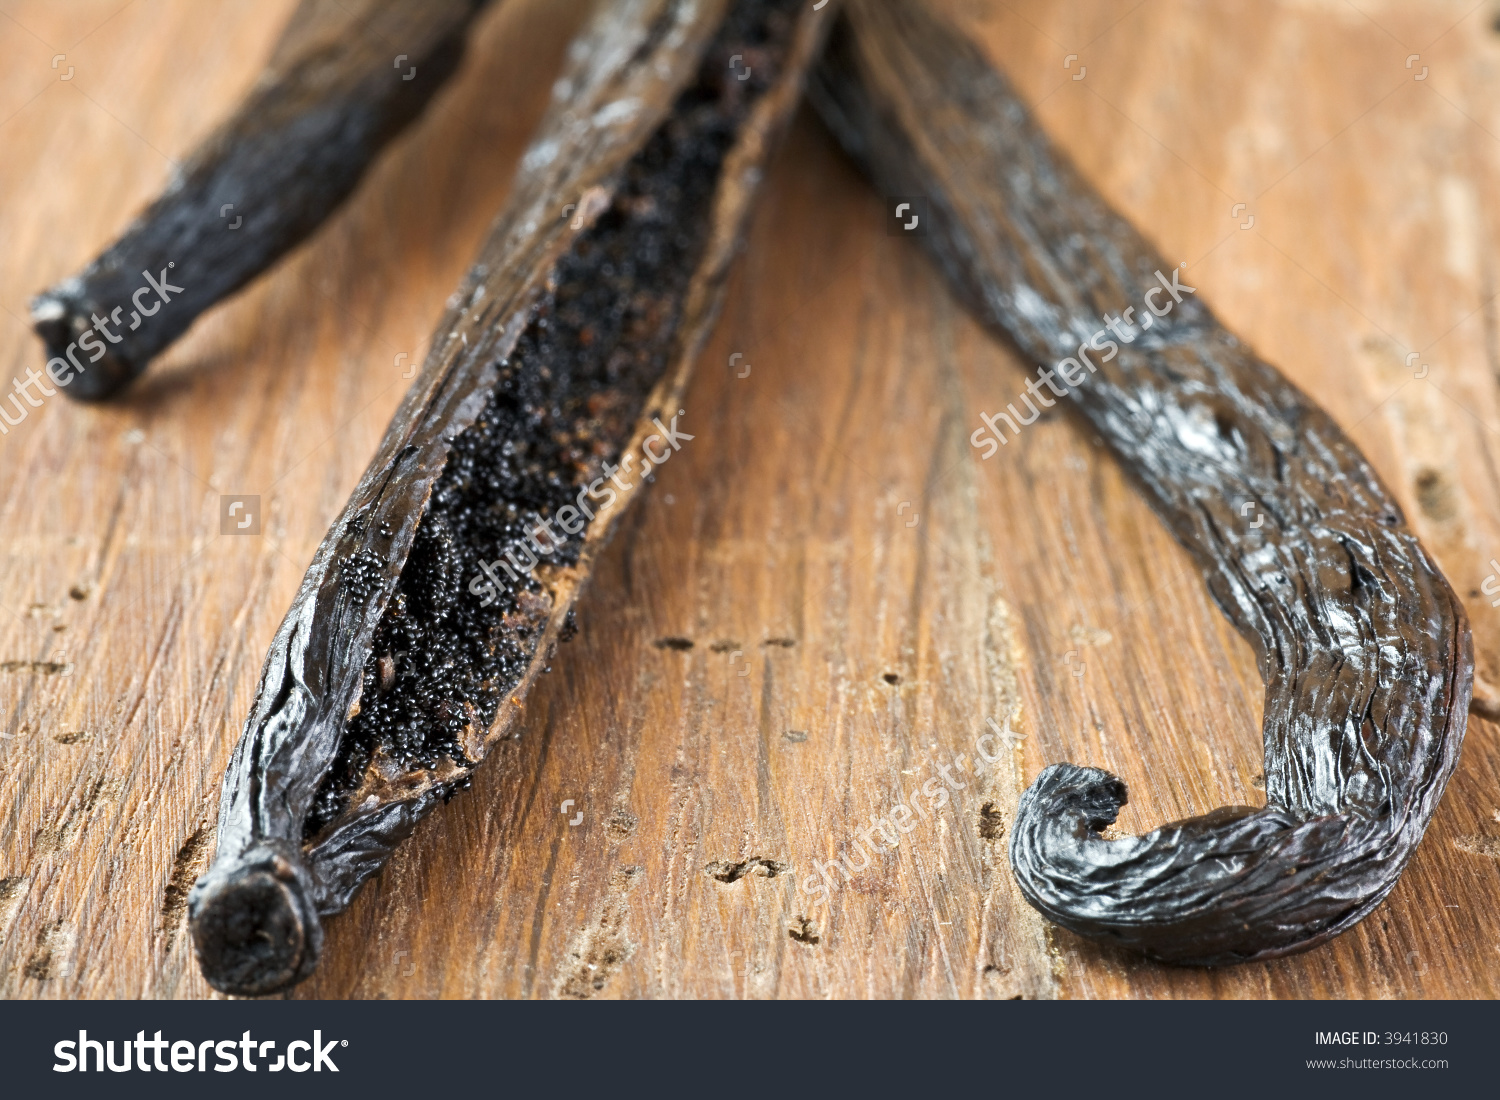 Fresh Vanilla Bean. Macro, Short Focus. Stock Photo 3941830.